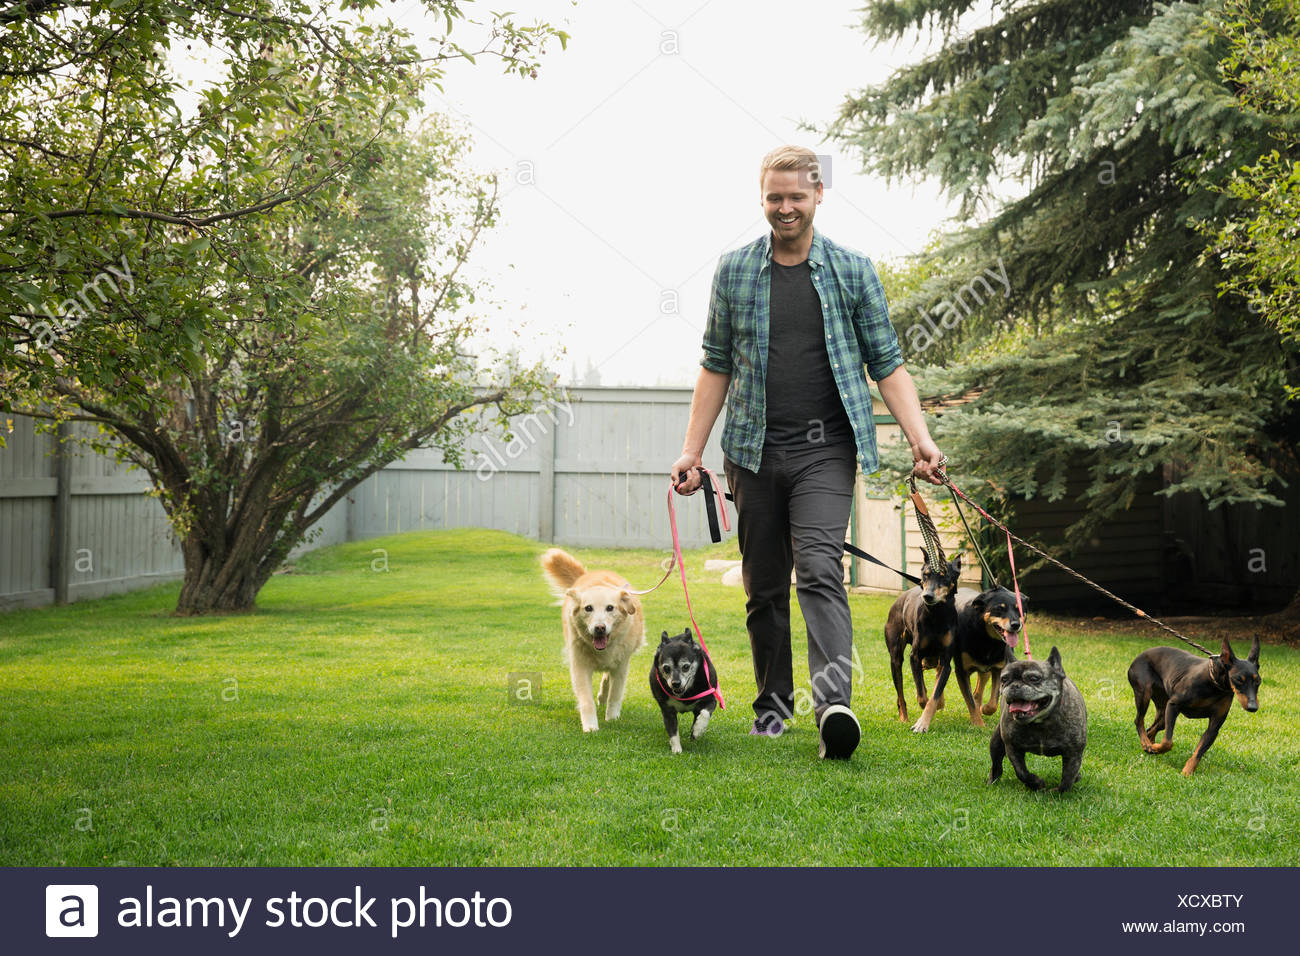 Man walking dogs on leashes in grass - Stock Image